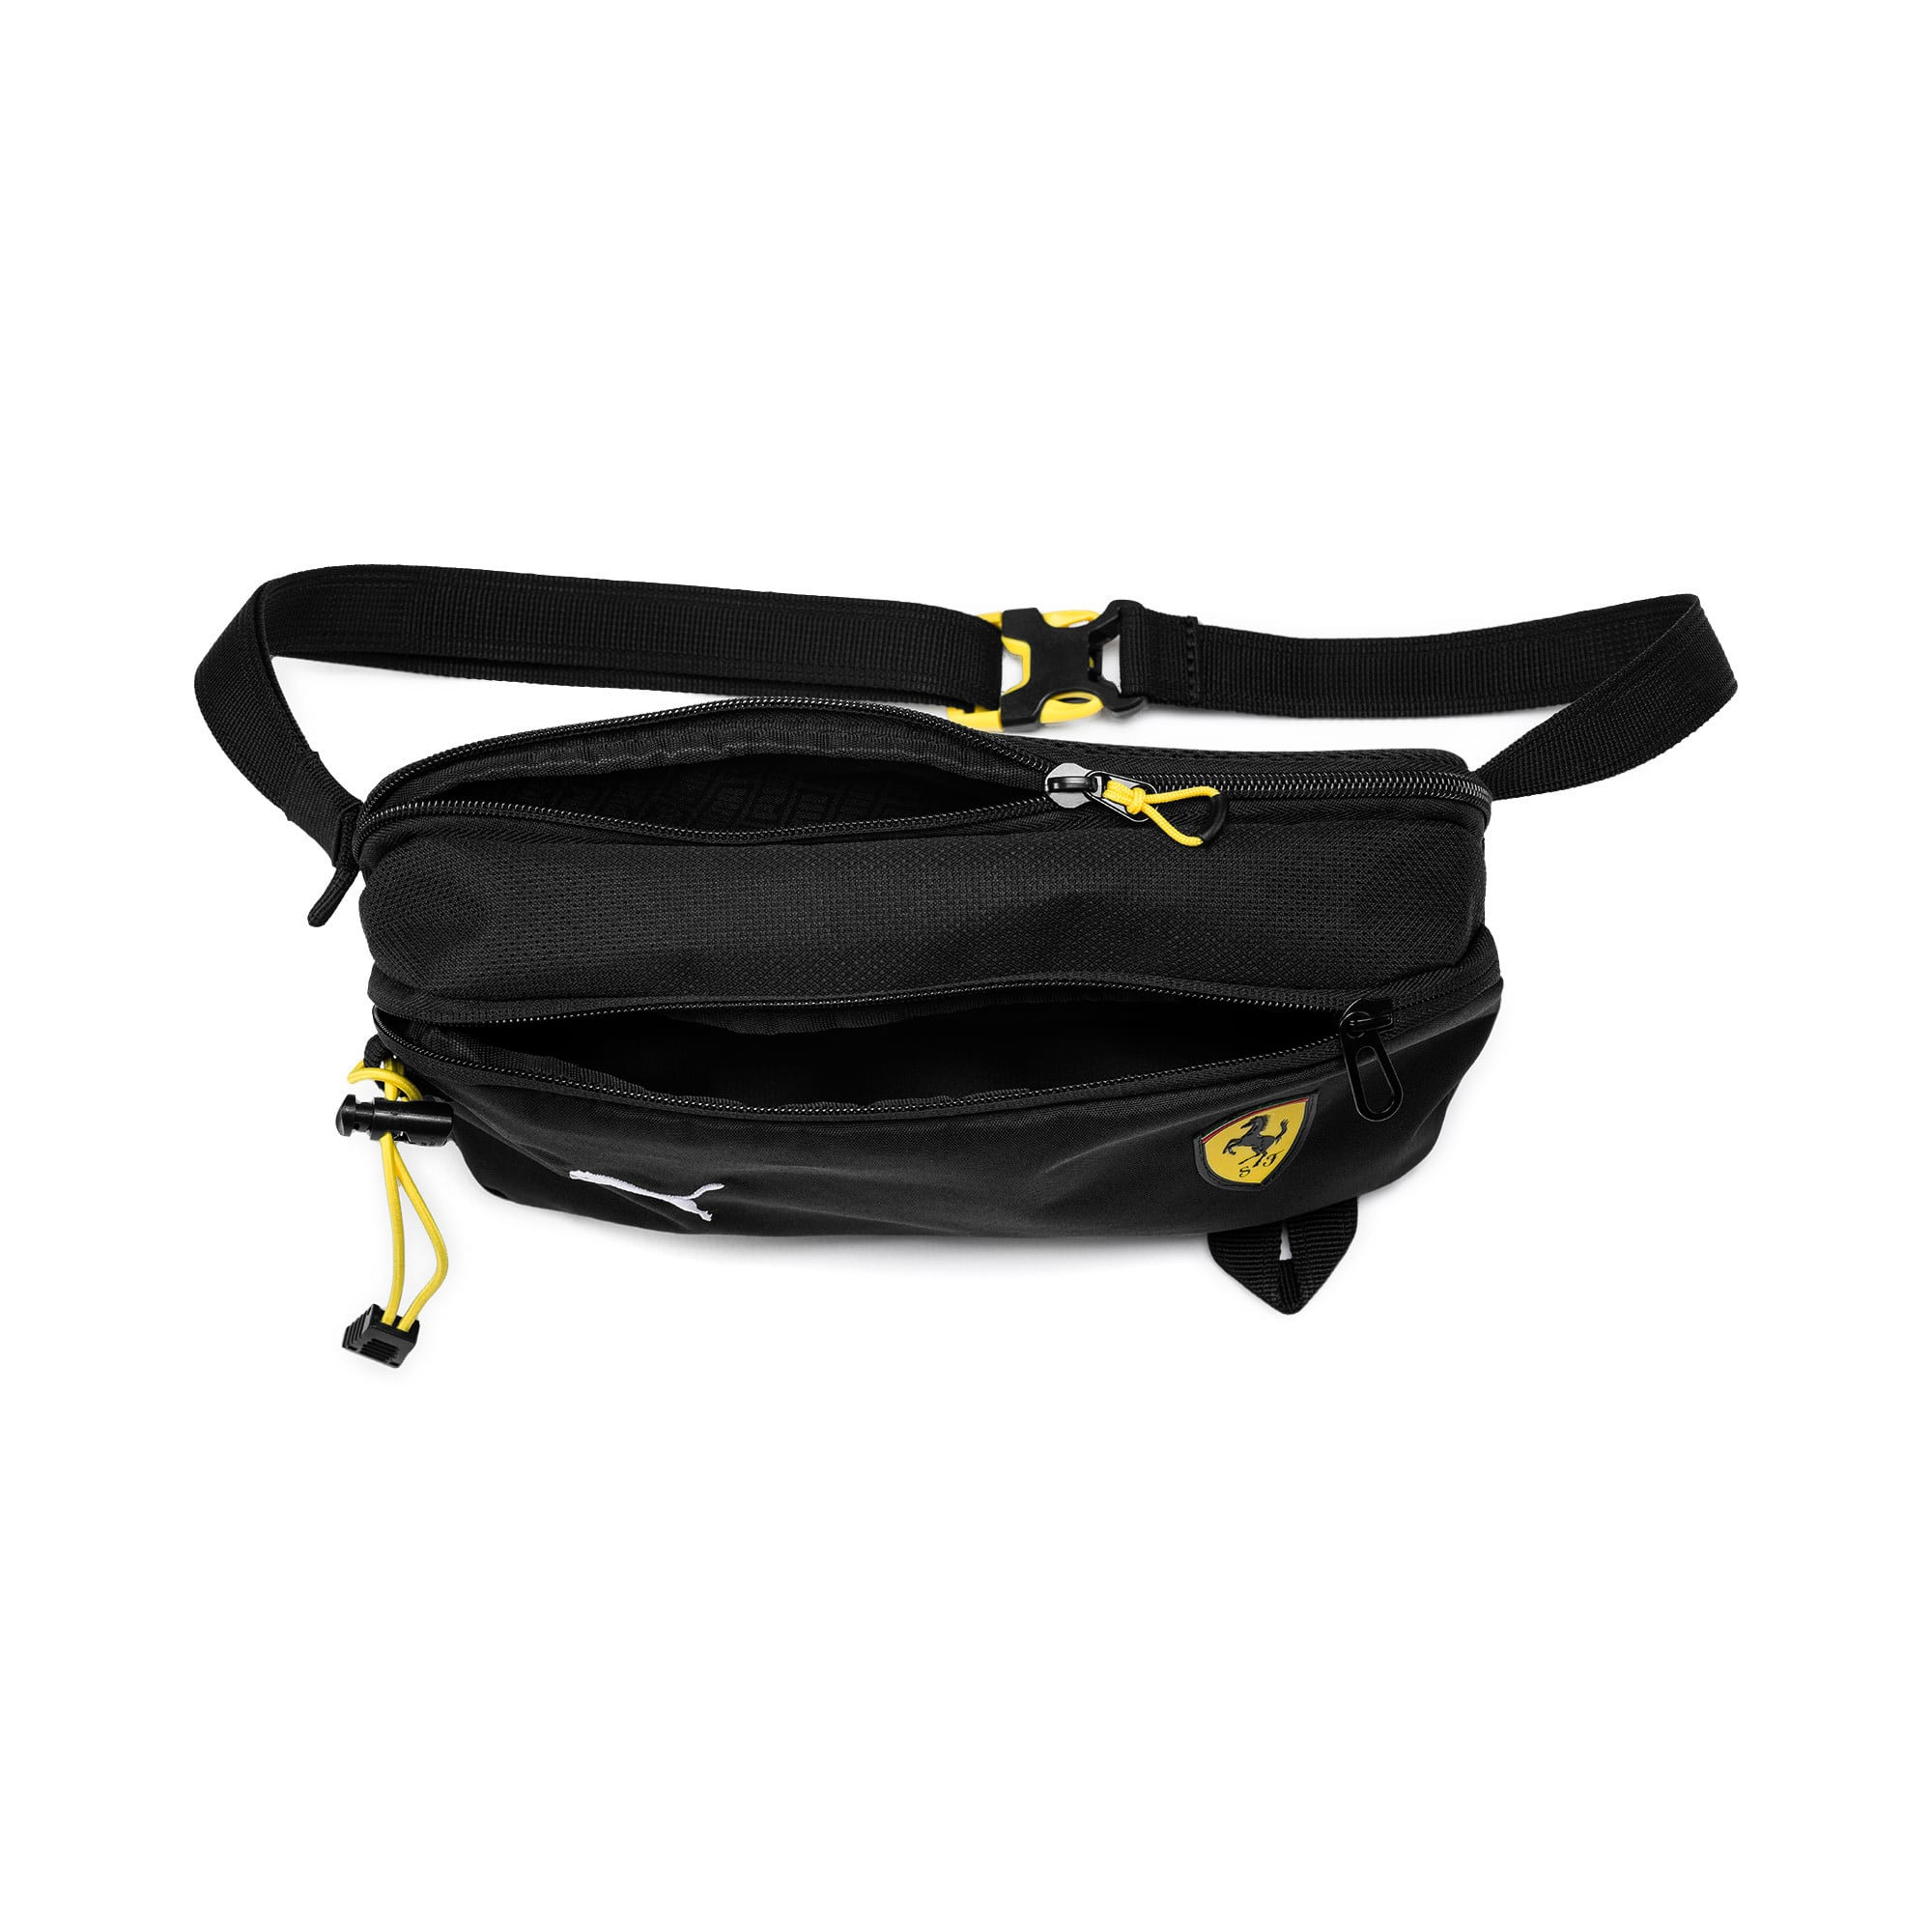 Thumbnail 3 of Ferrari Fanwear Waist Bag, Puma Black, medium